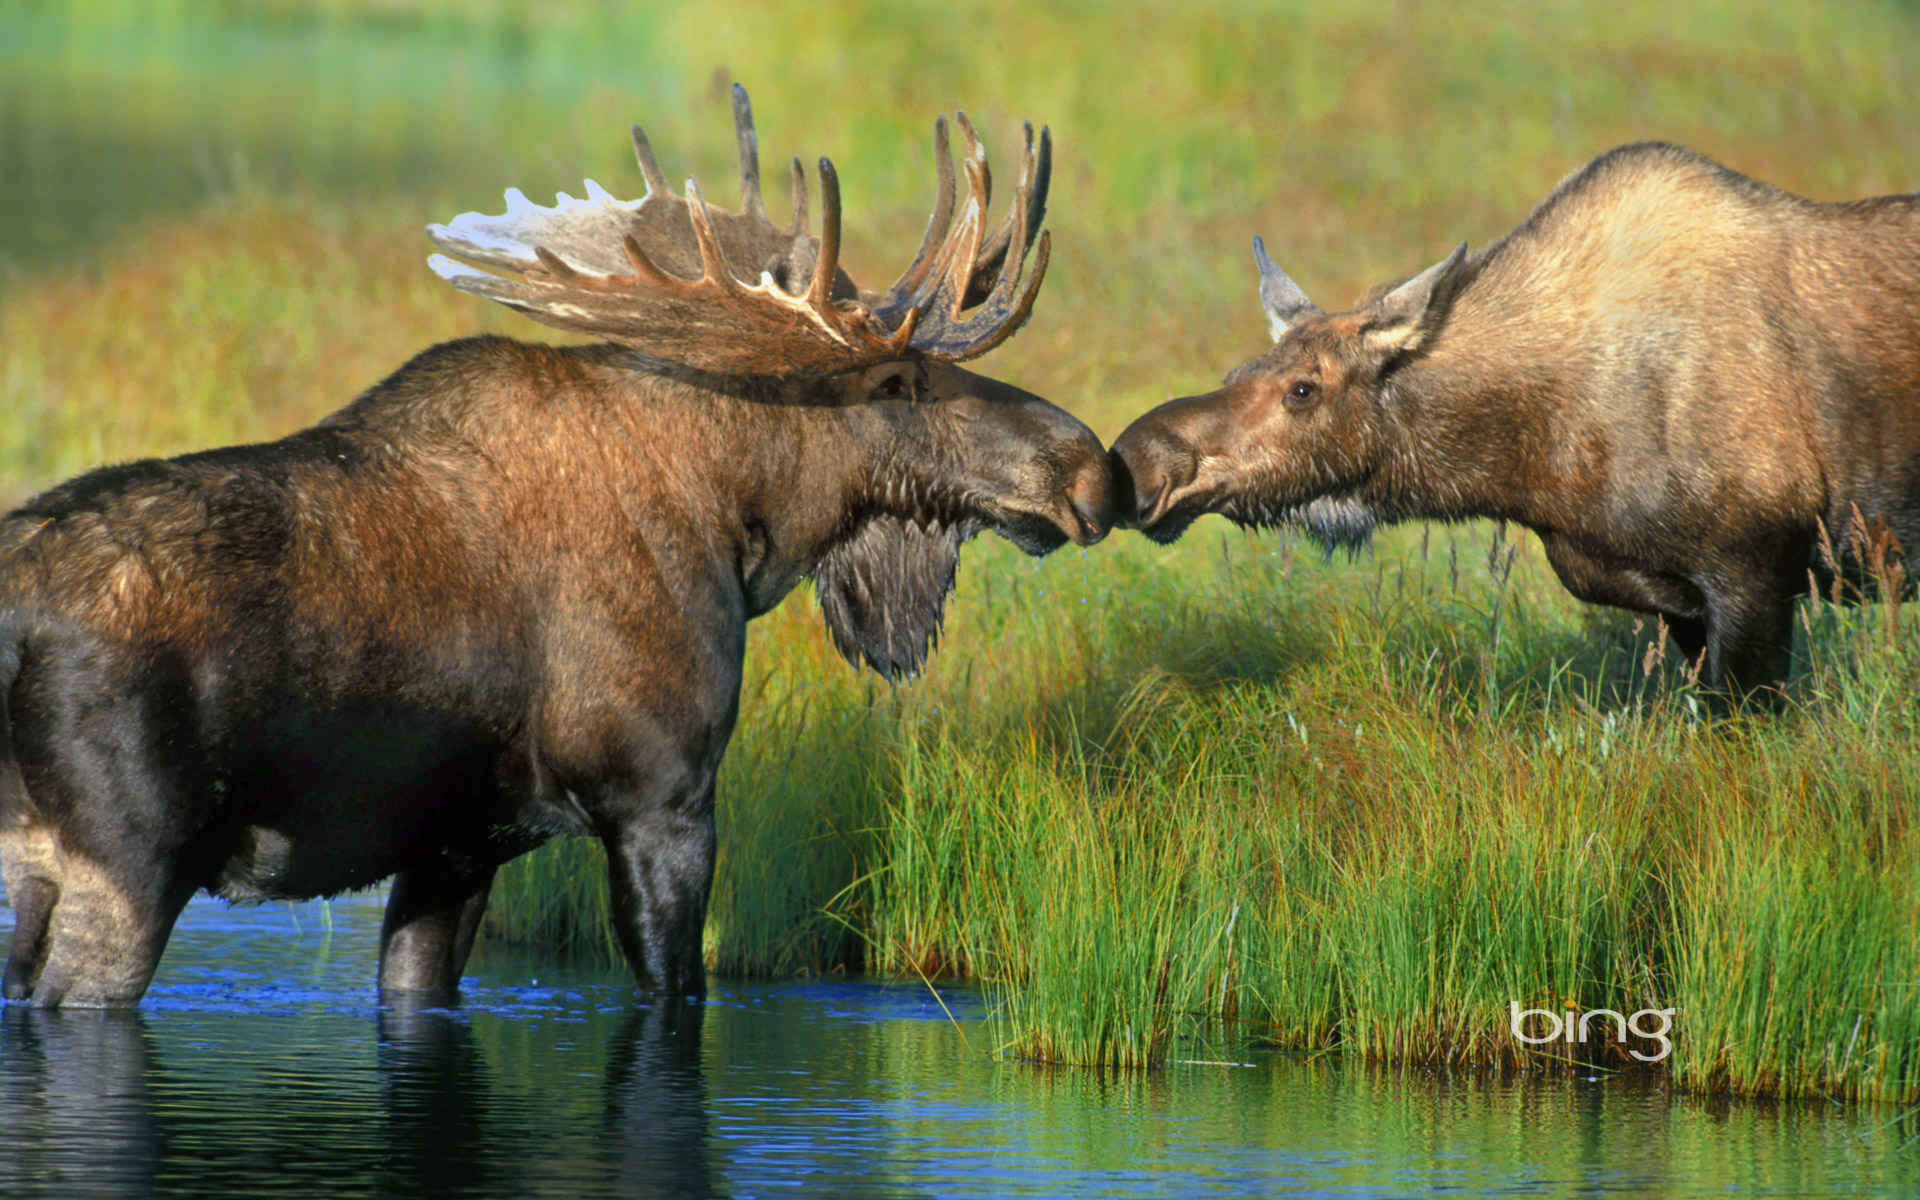 moose hd wallpaper - photo #19